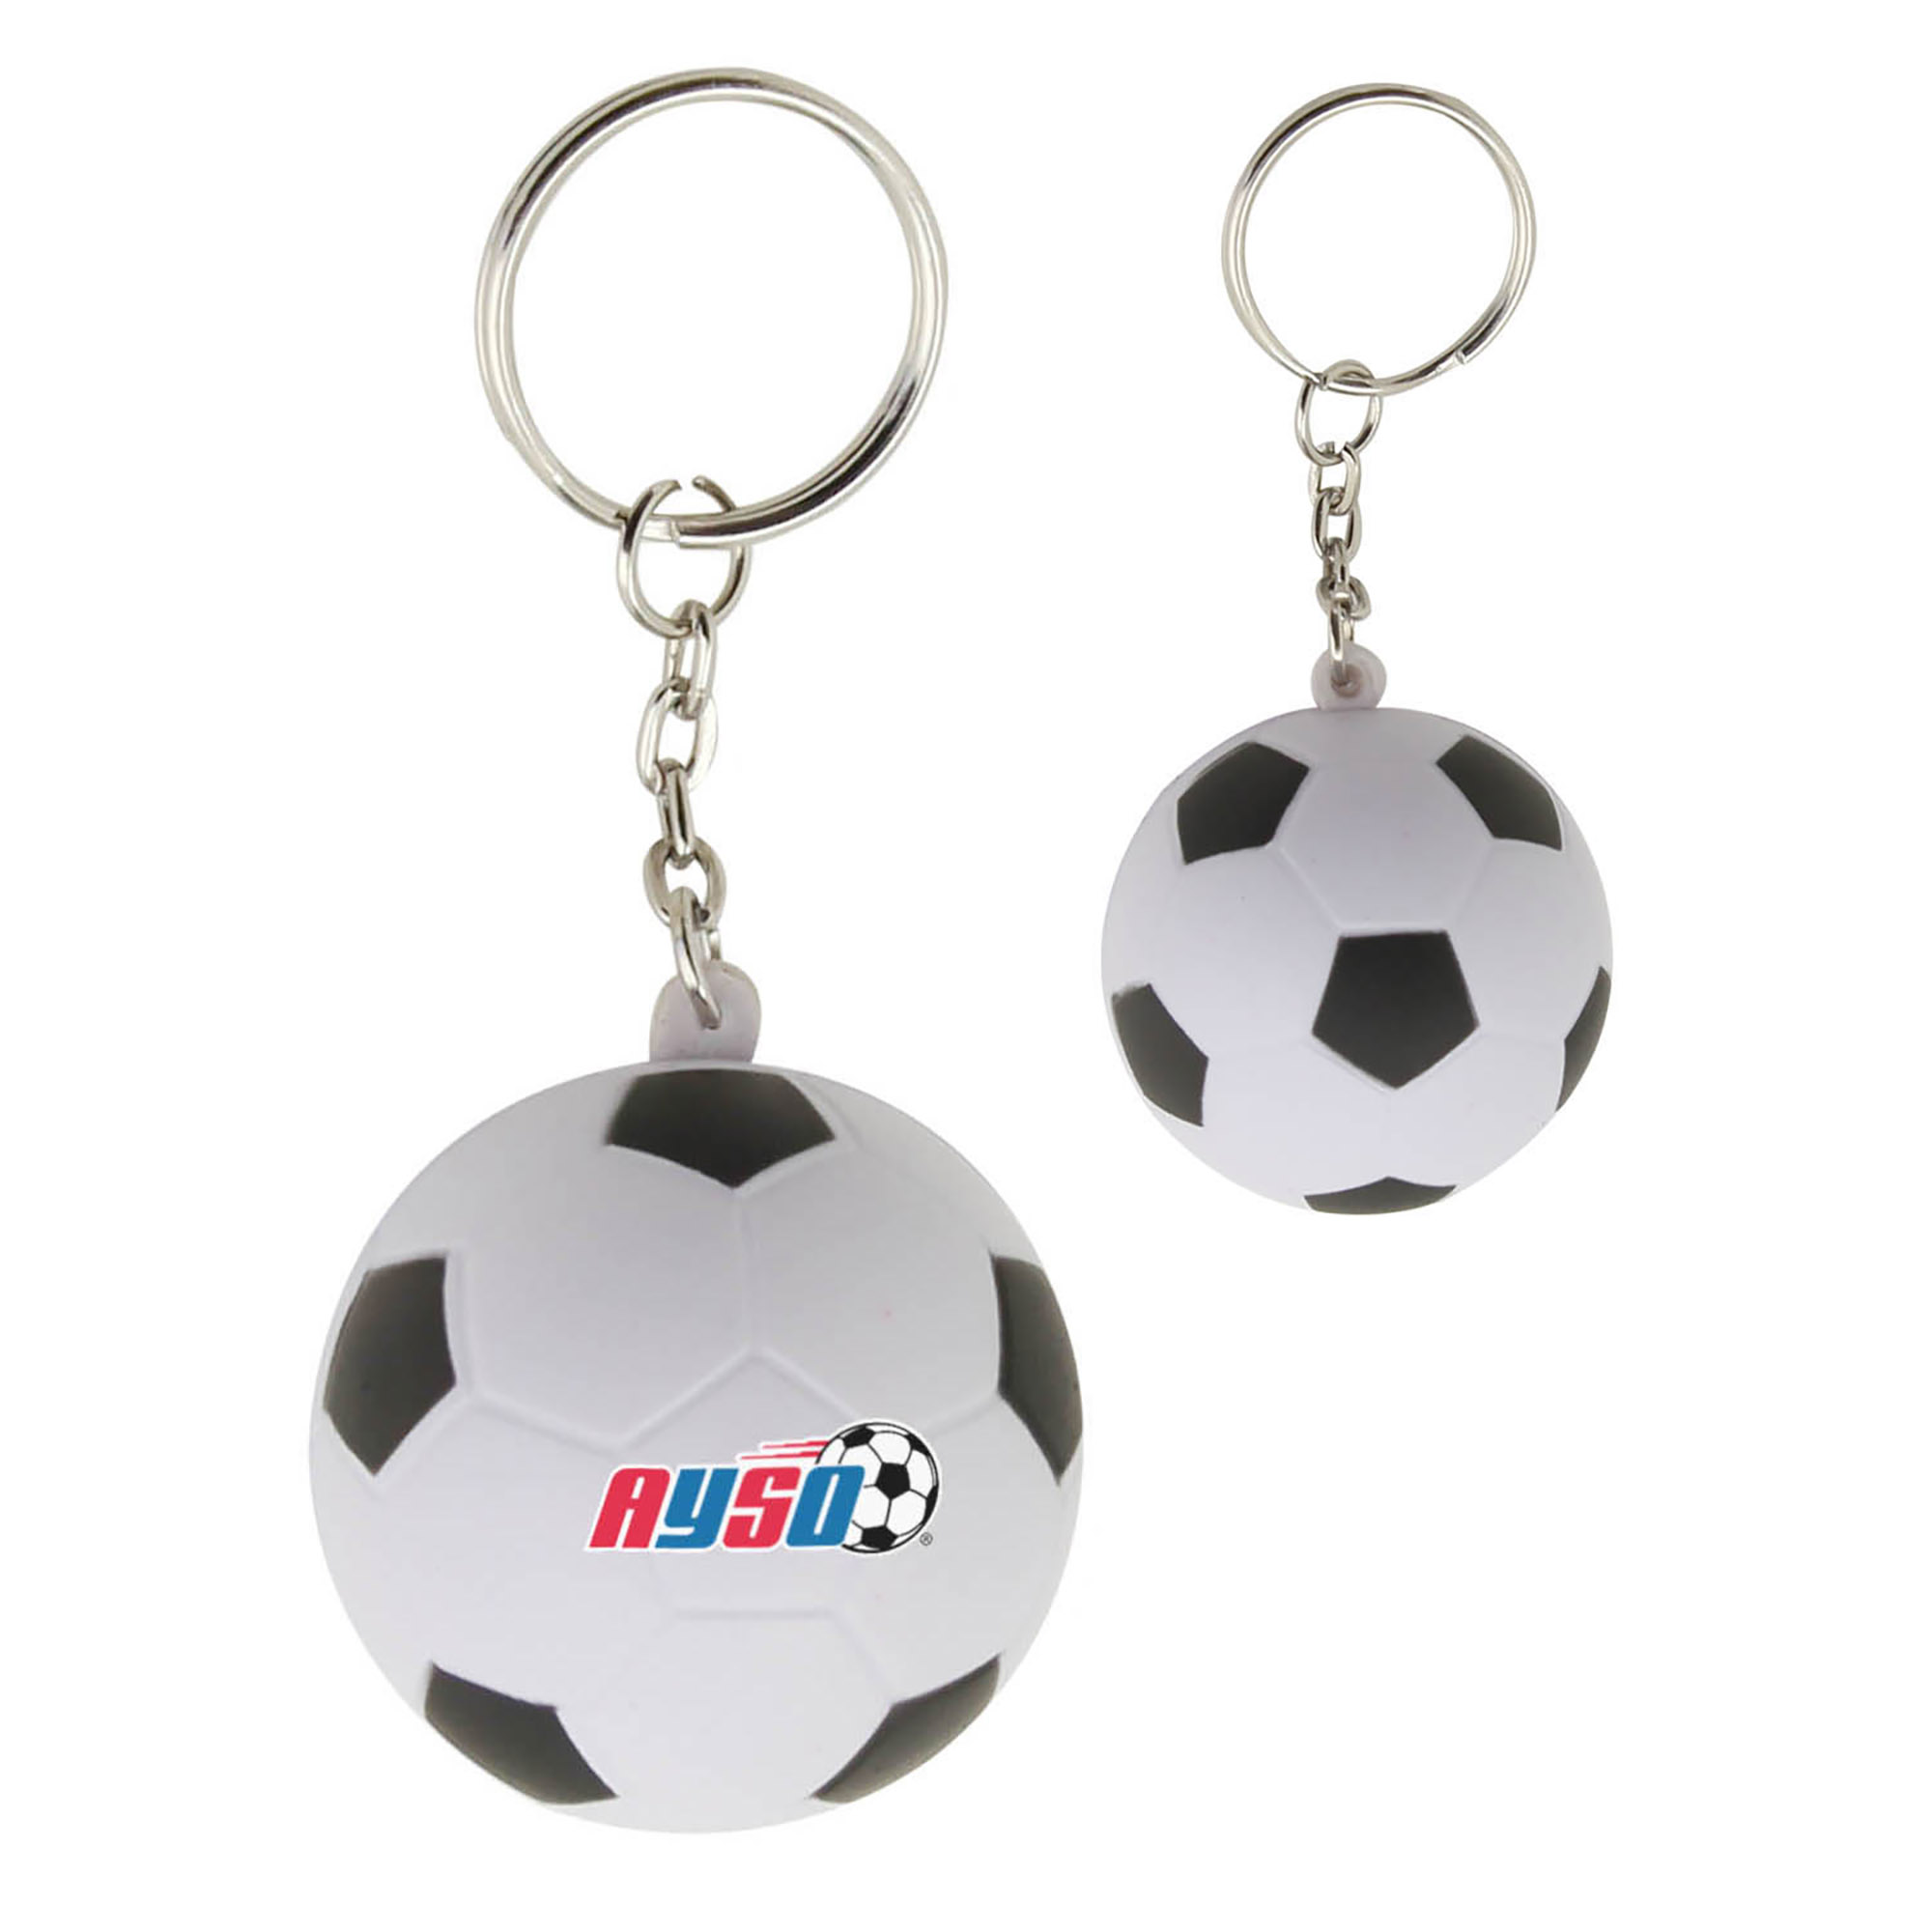 STRESS SOCCERBALL KEYRING - 1 Colour Print, From $0.57